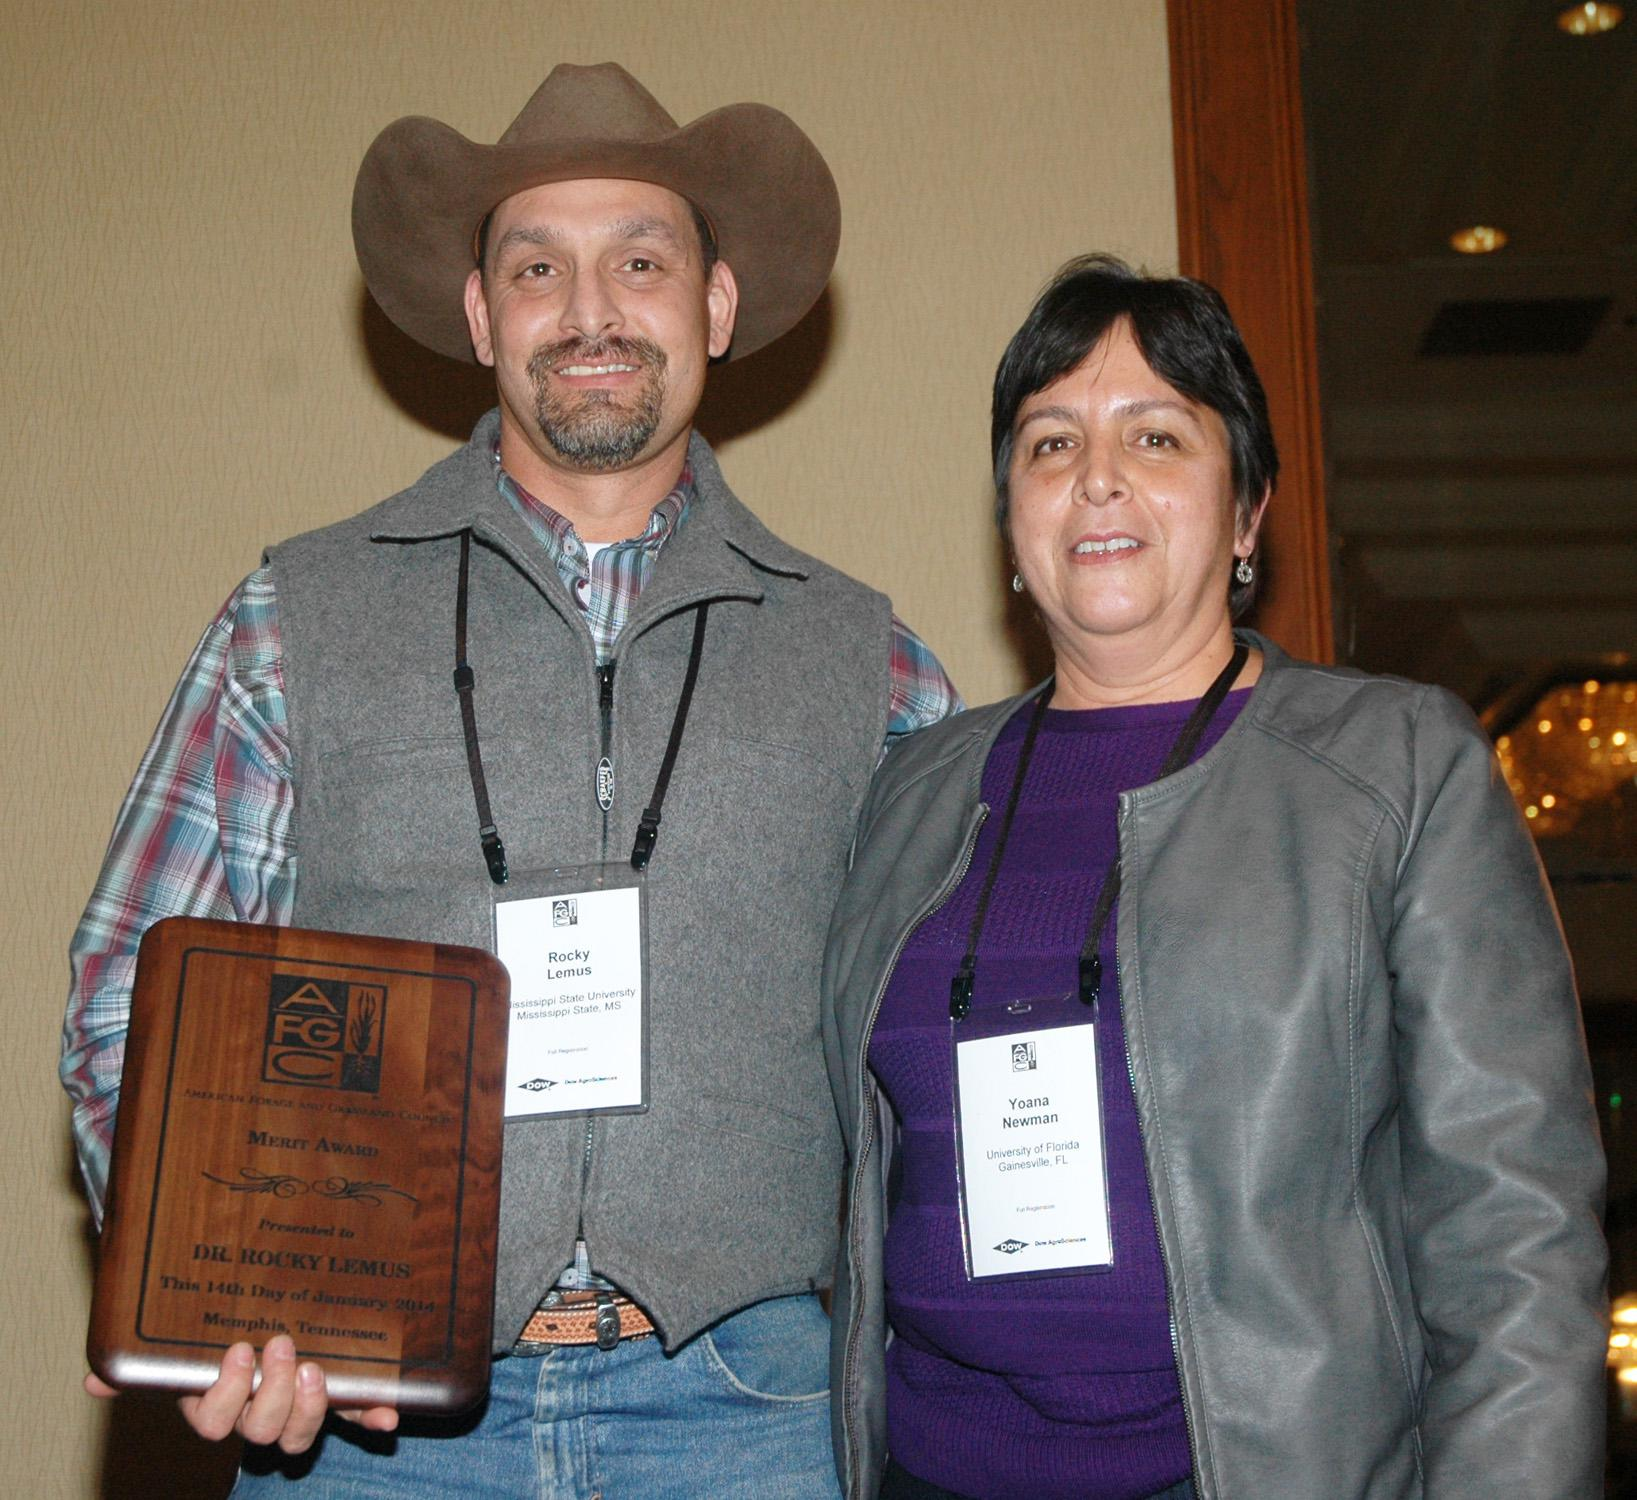 Rocky Lemus receives a merit award from Yoana Newman, a member of the American Forage and Grassland Council Board and Foundation Board, during the recent annual conference in Memphis on Jan. 14, 2014. (Photo by Virginia Tech/Chris Teutsch)